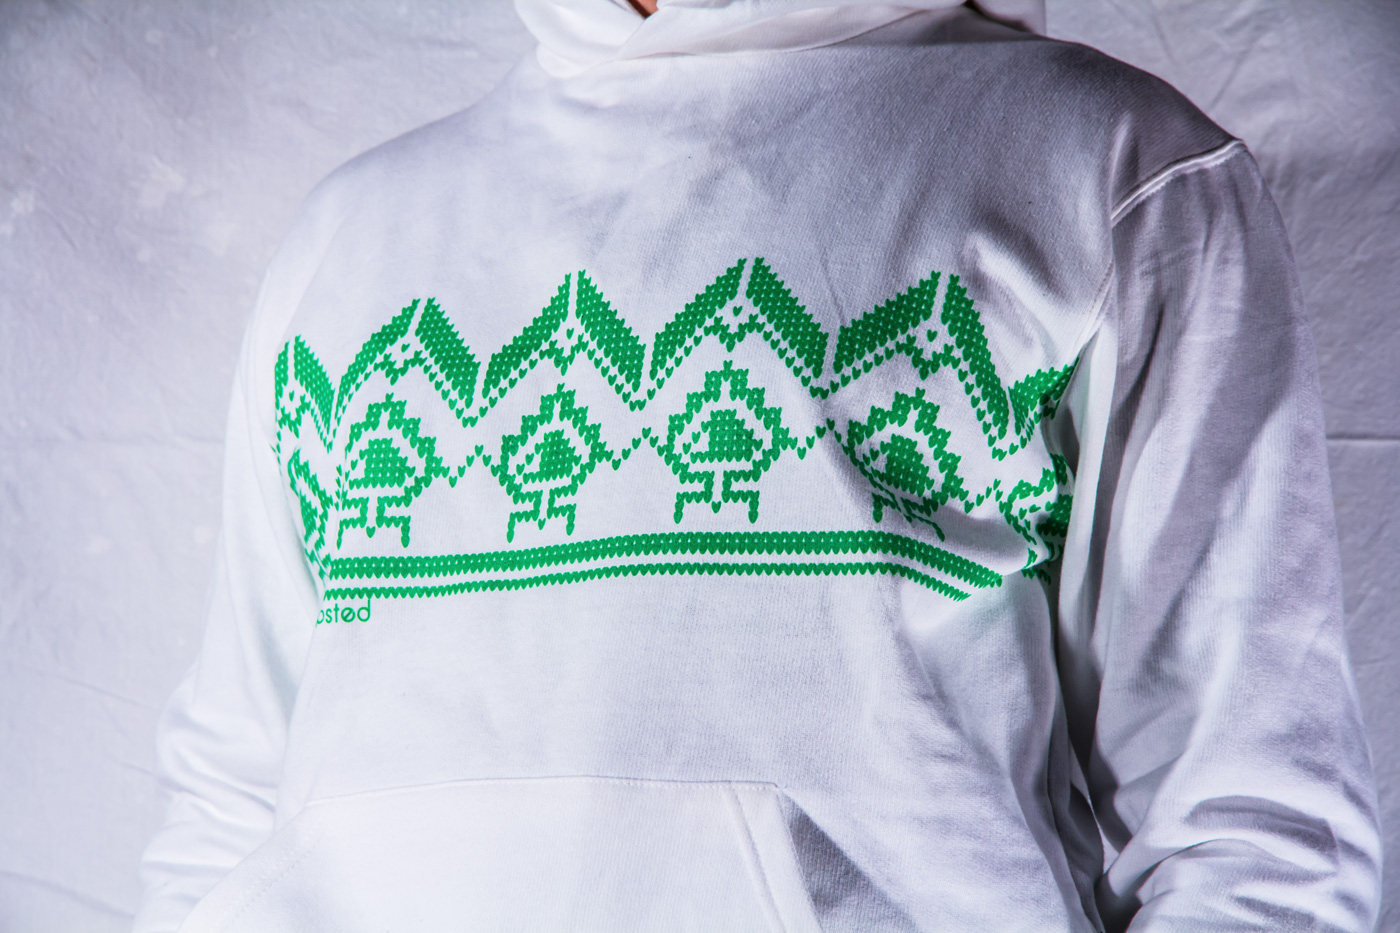 silkscreen print aliens characters of arcade videogames on hoodie and t-shirt with emboidery effect